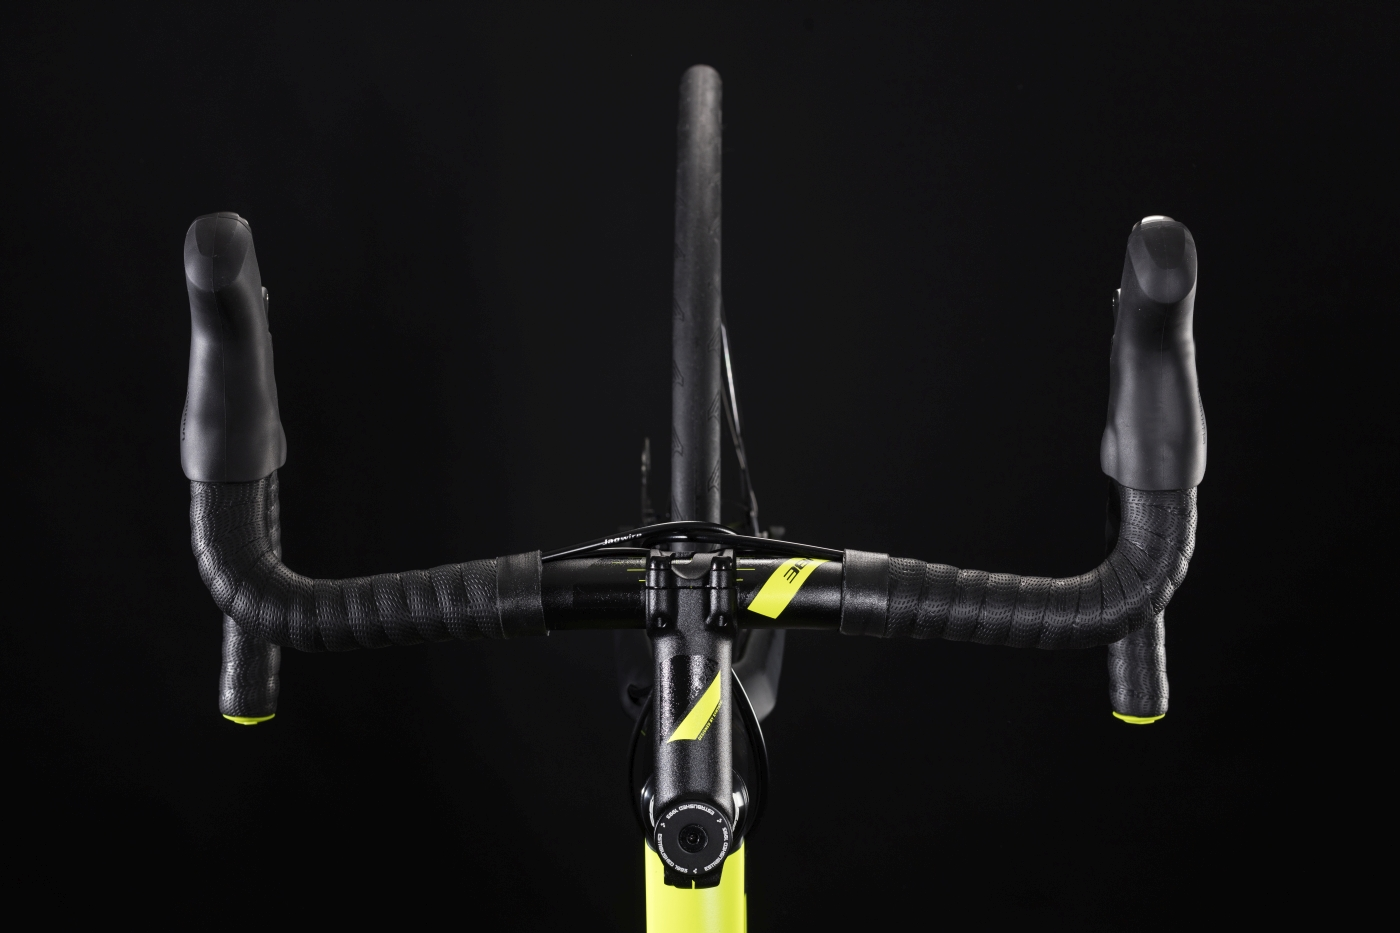 ea7c0a9f79d The 2019 CUBE Attain Race Disc brings a little of the racing spirit to  longer rides, post-work blasts with your training buddies, or regular  training ...